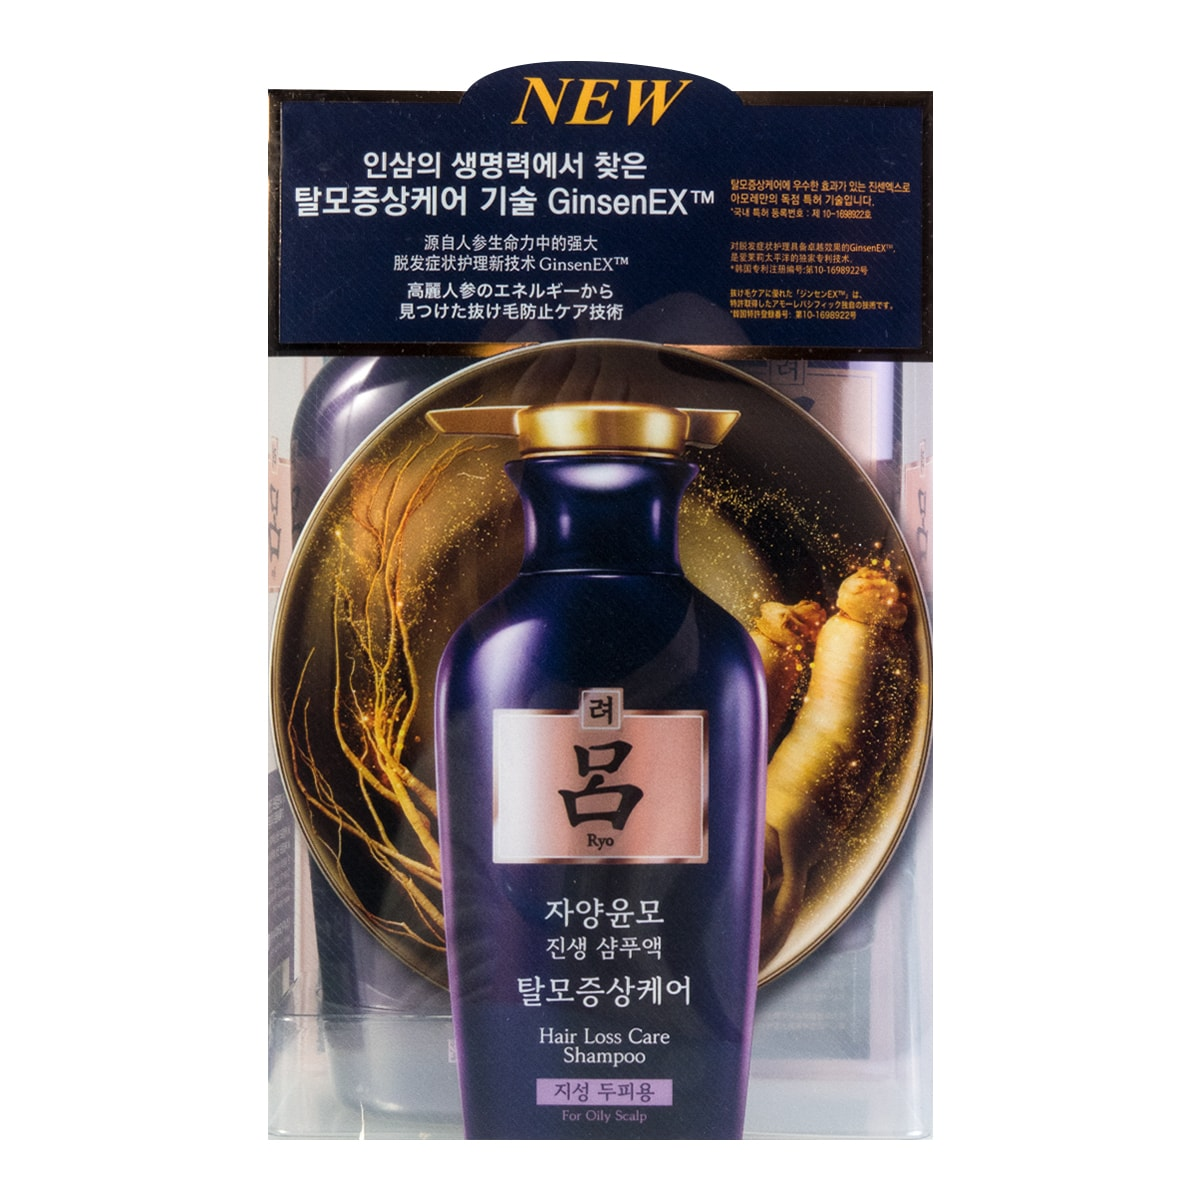 RYO Anti-Hair Loss Shampoo Set For Oily Scalp 400ml+180ml